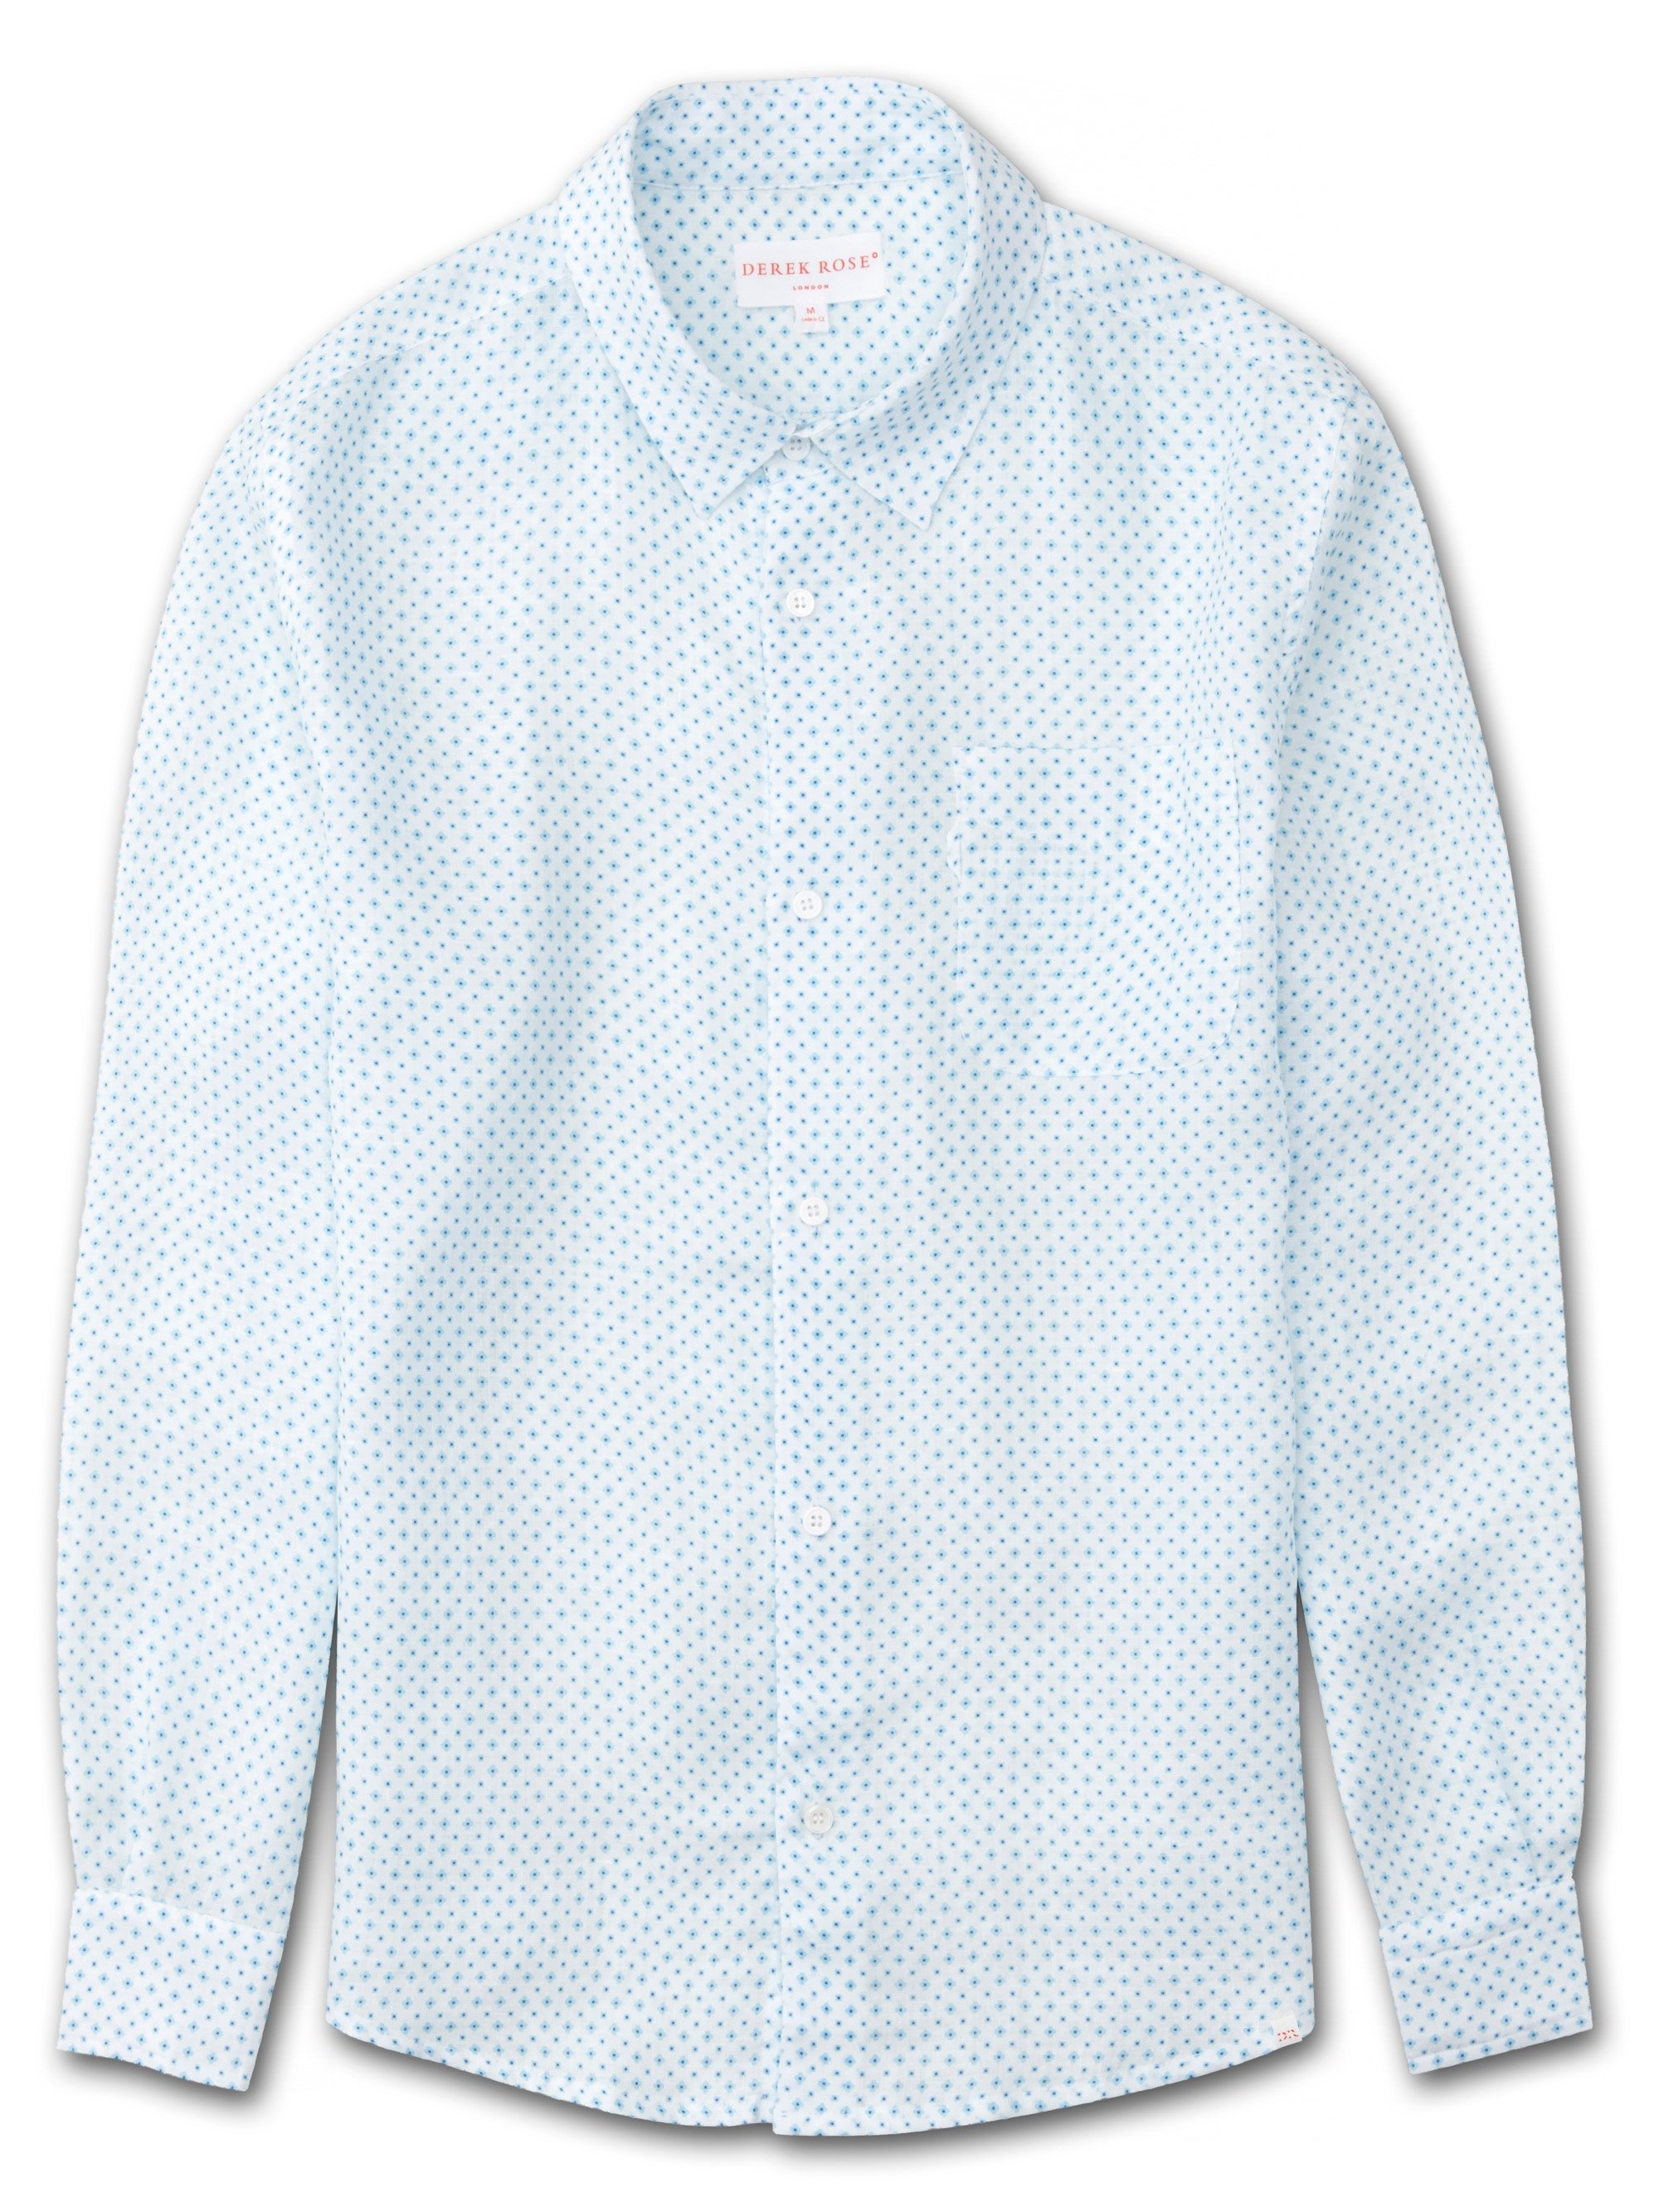 Men's Linen Shirt Milan 8 Pure Linen White